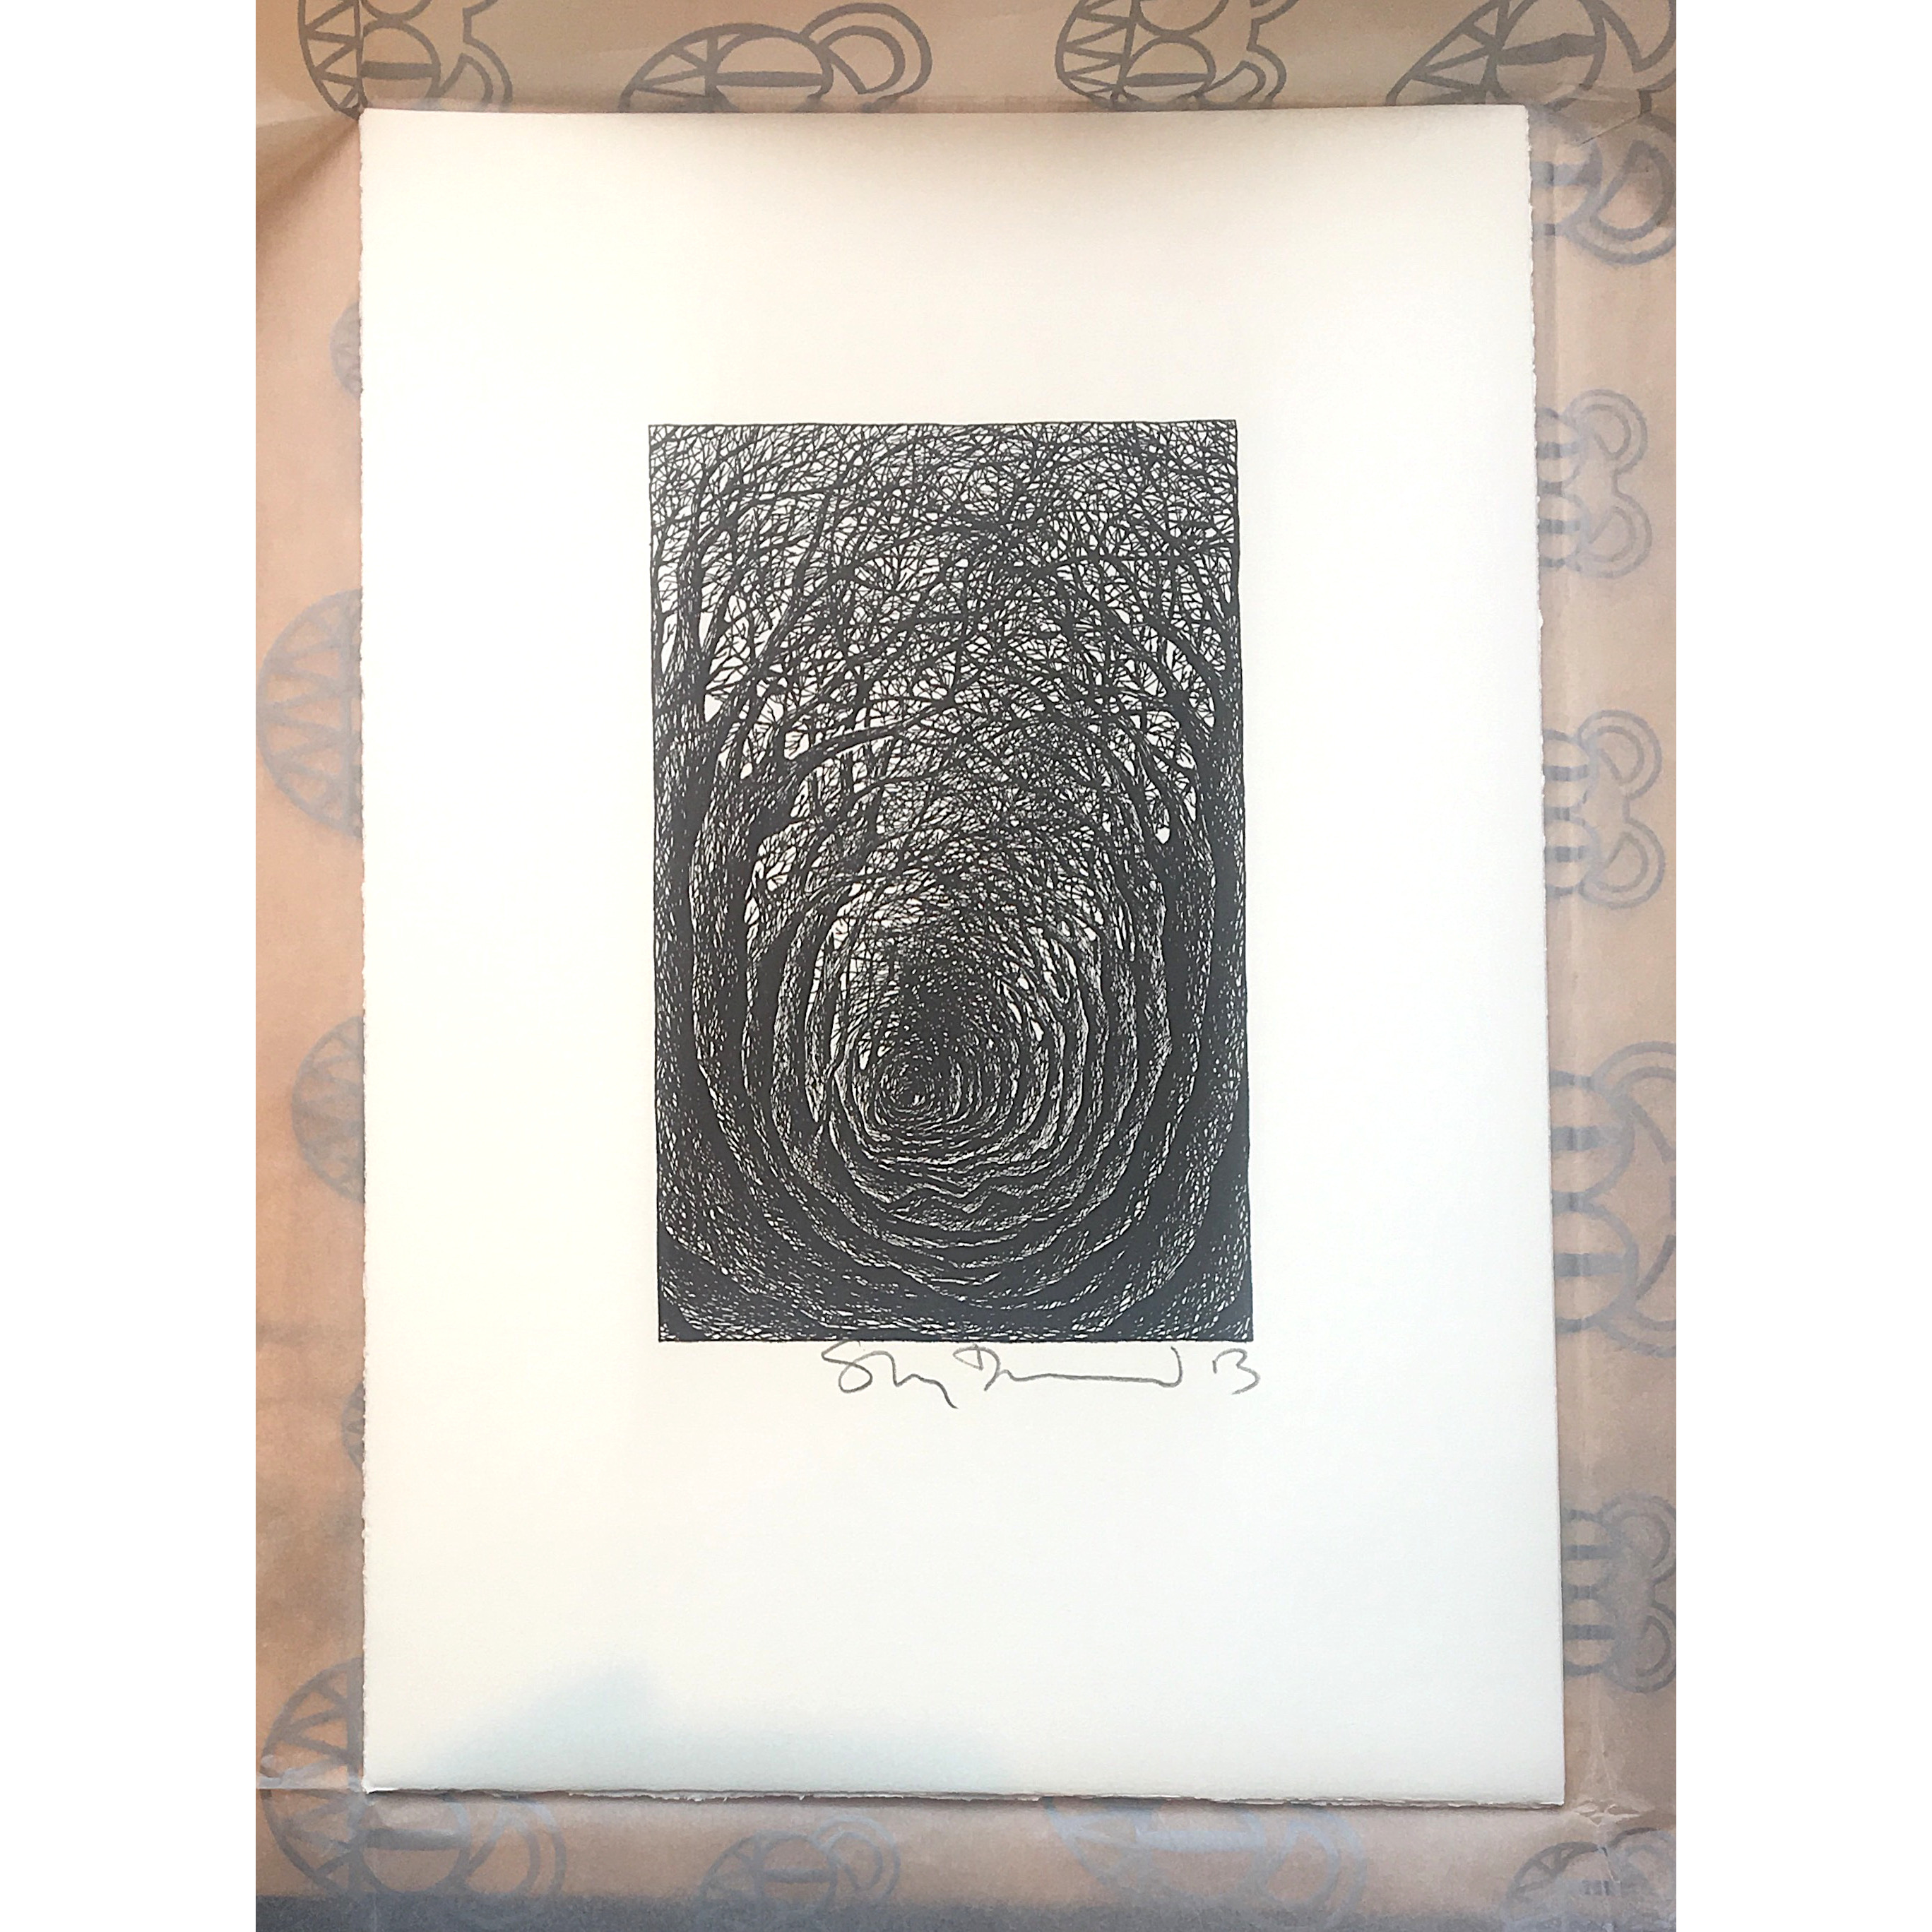 Holloway (3) by Stanley Donwood